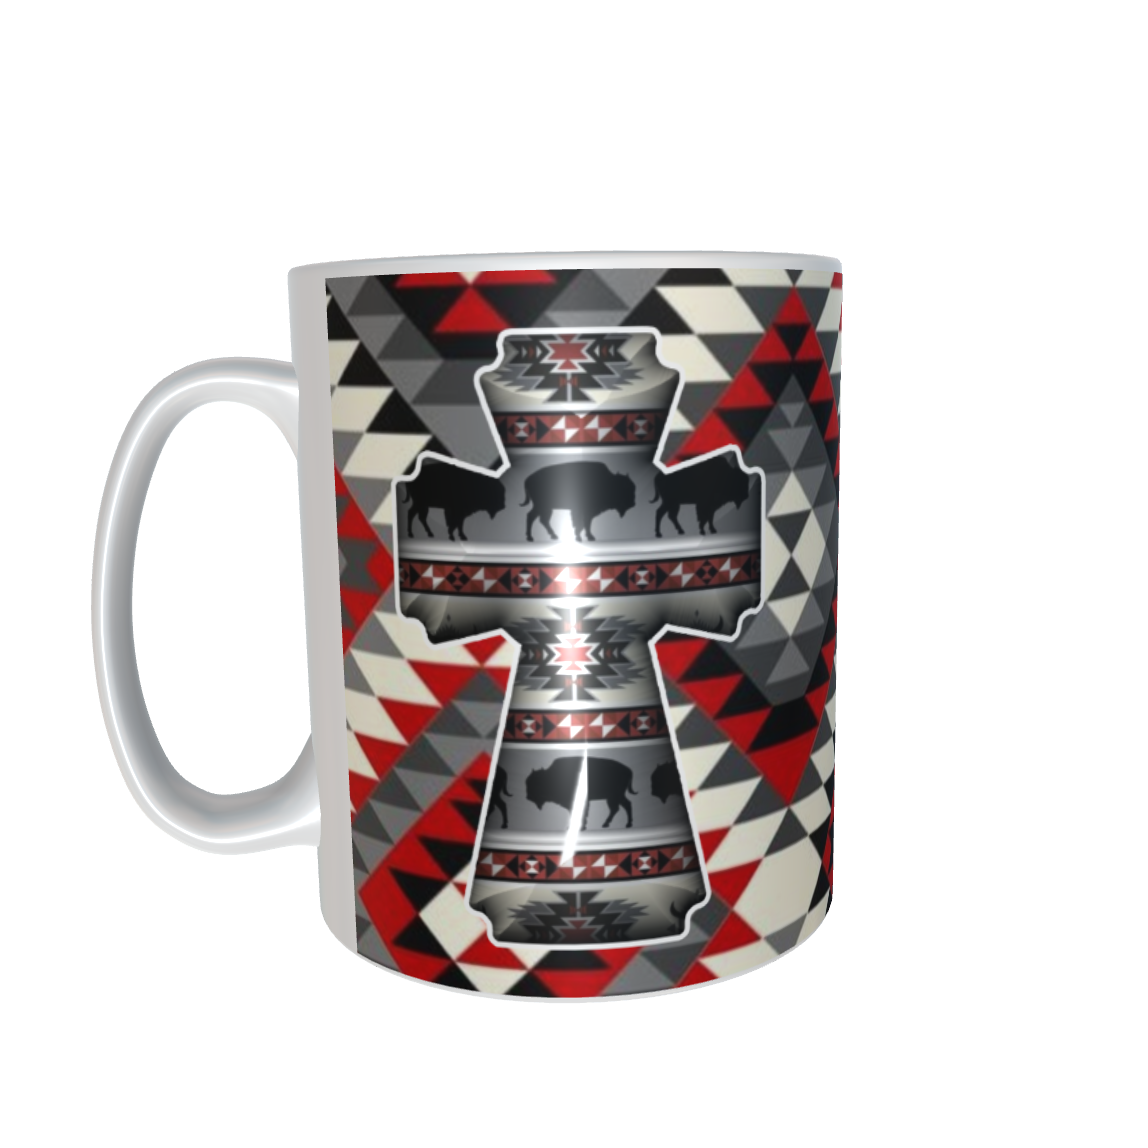 South West Red Cross 15oz Mug